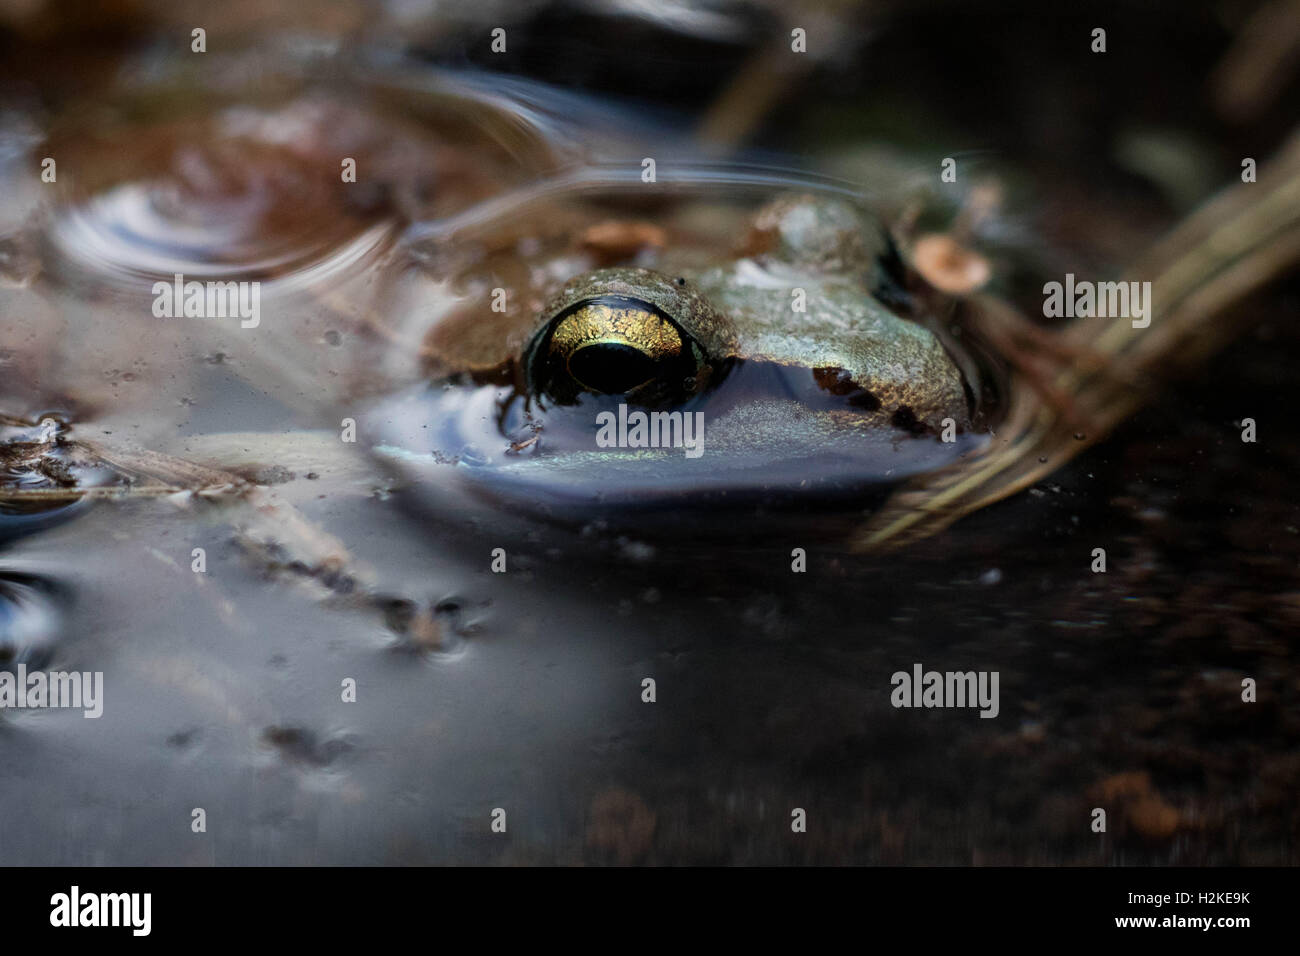 Wood Frog in Water - Stock Image